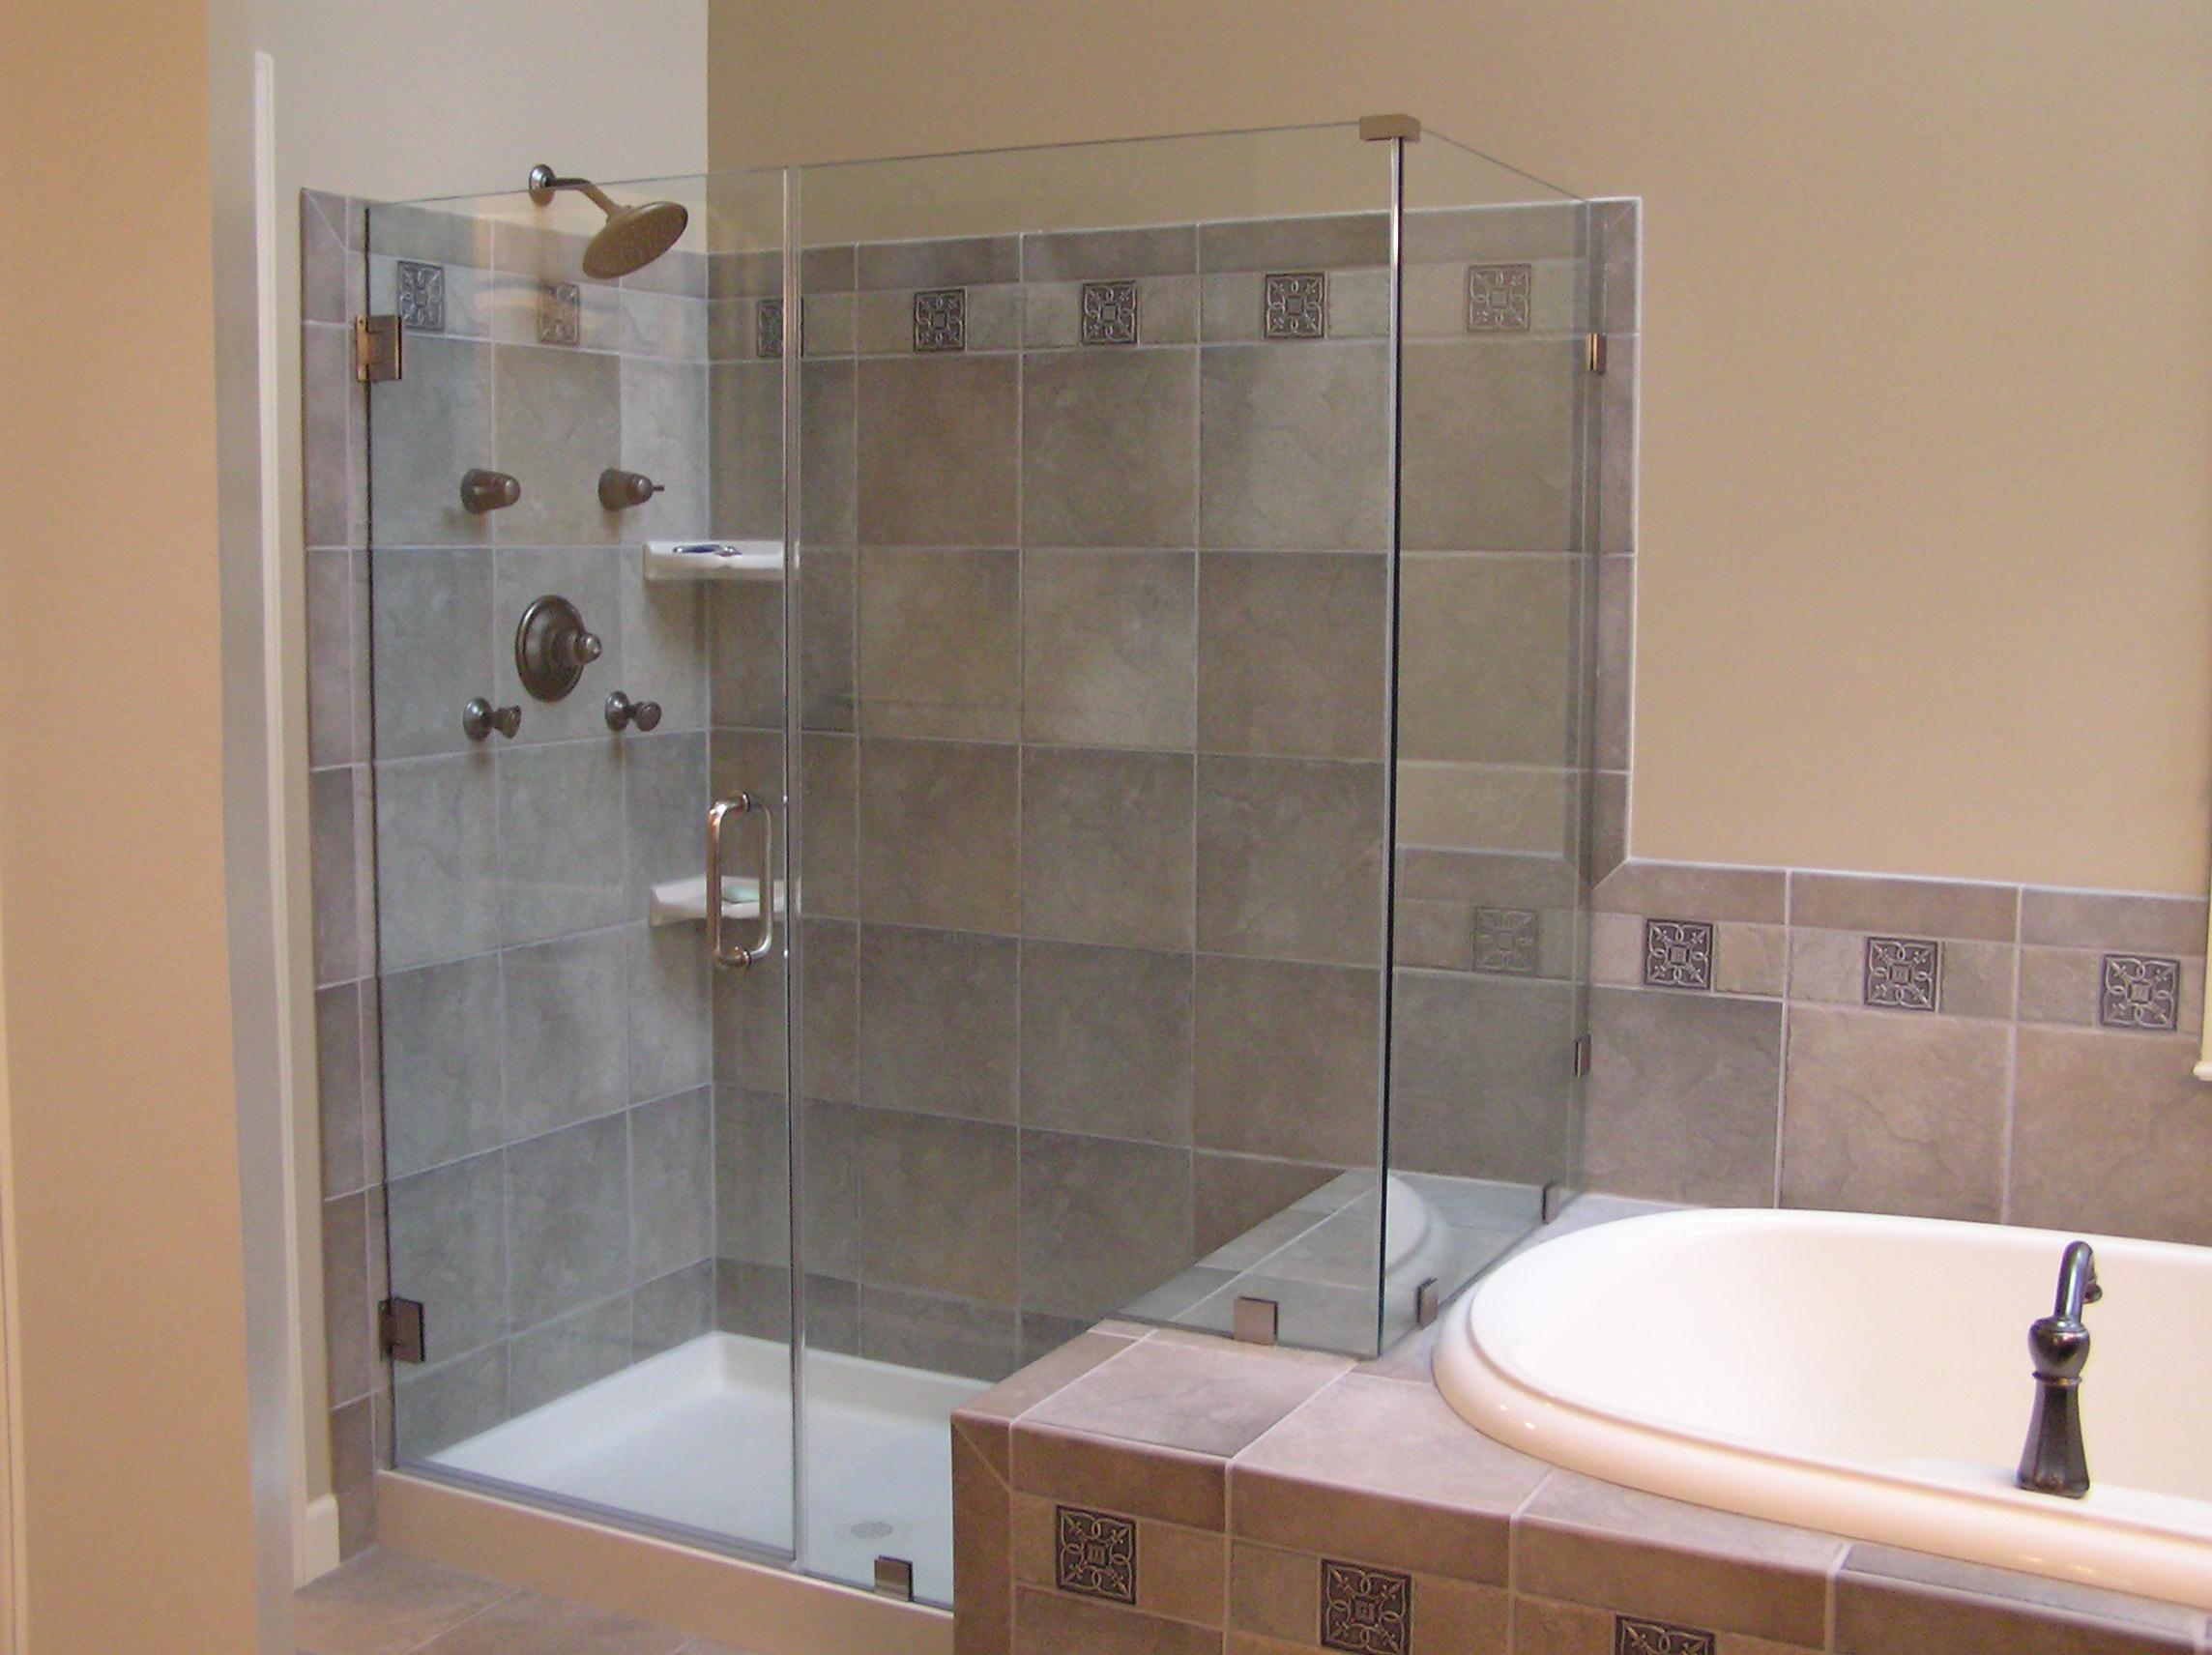 Pictures Of Remodeled Bathrooms bathroom remodel delaware - home improvement contractors